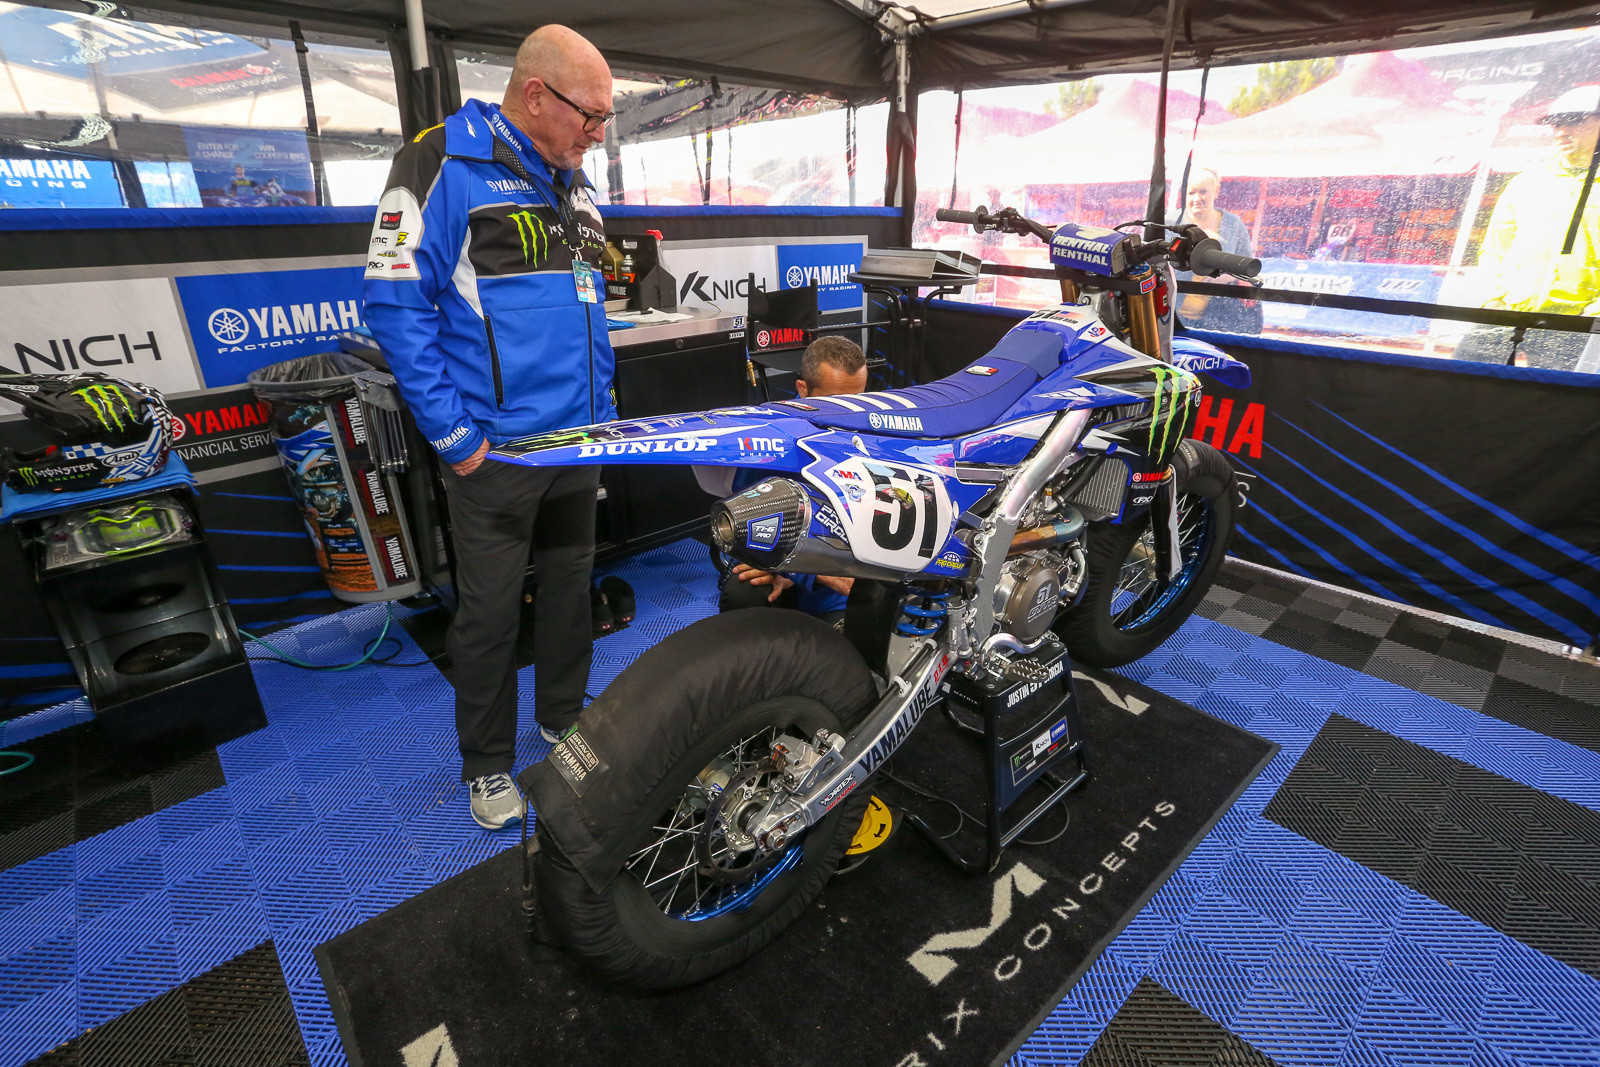 Bob Oliver eyeing up Justin Barcia's YZ450F. The morning started off cool and wet here, and Justin's bike was fitted up with tire warmers.